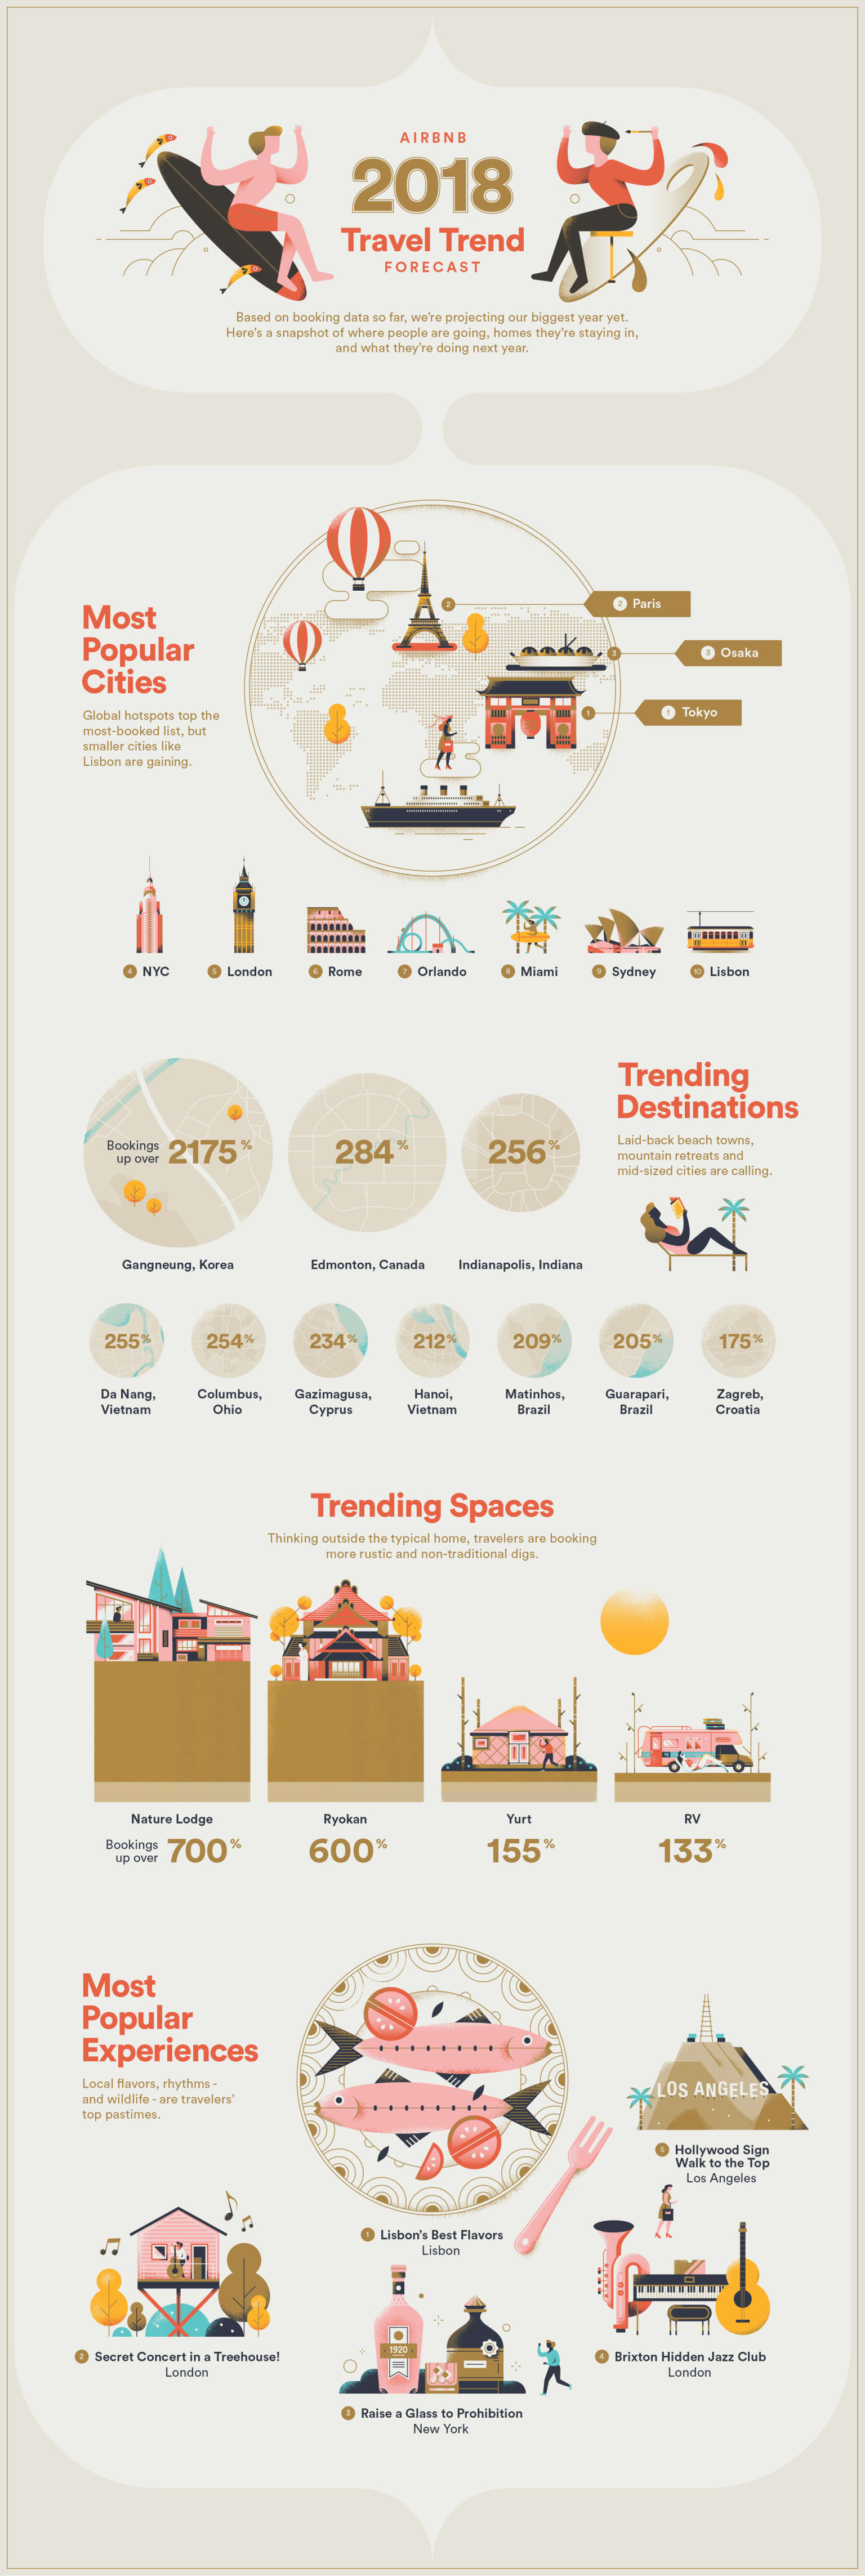 Airbnb's 2018 Travel Trend Forecast